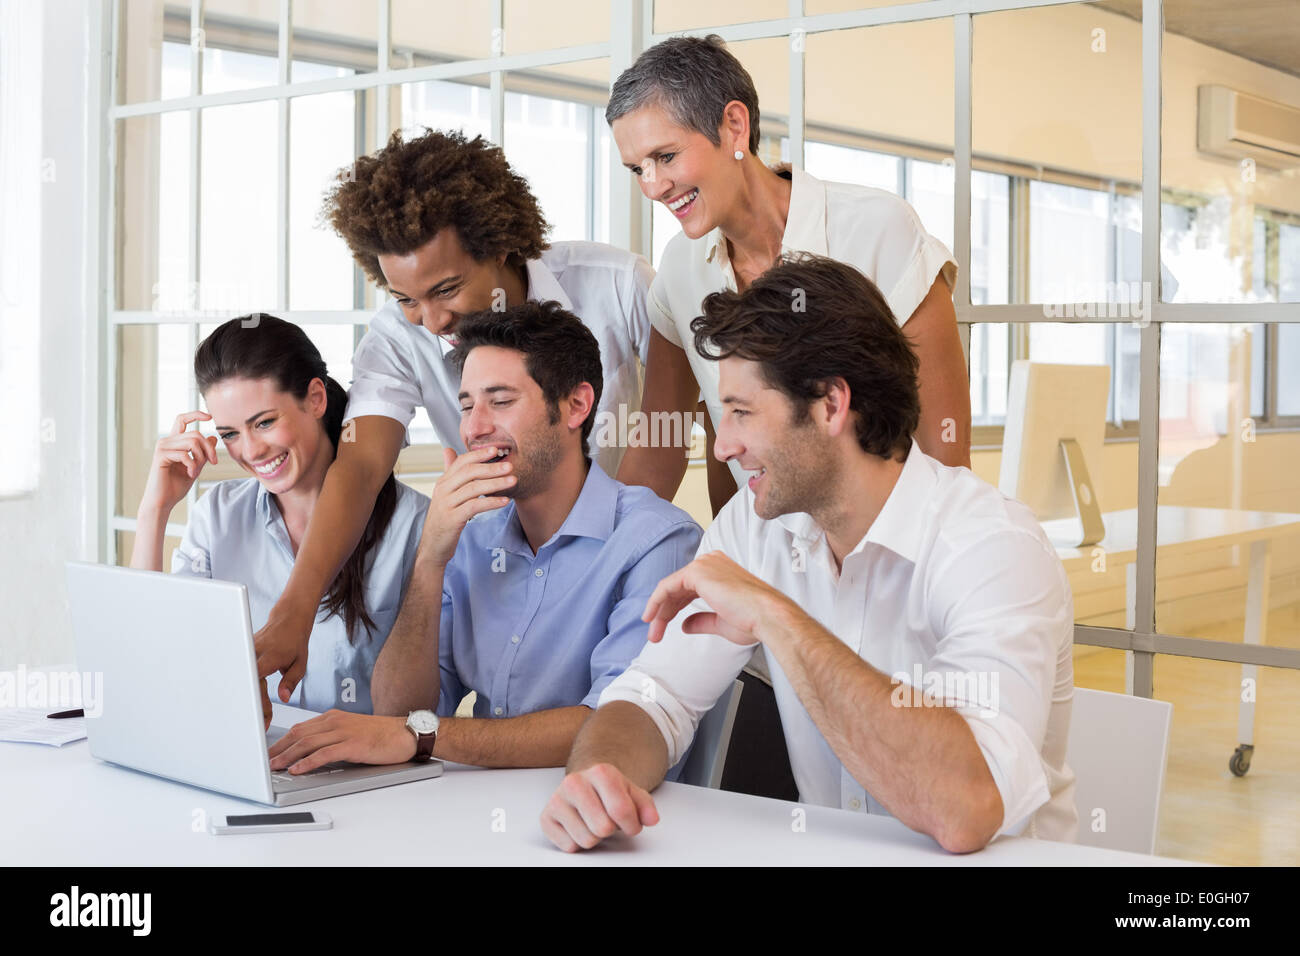 Business people laugh while looking at laptop - Stock Image